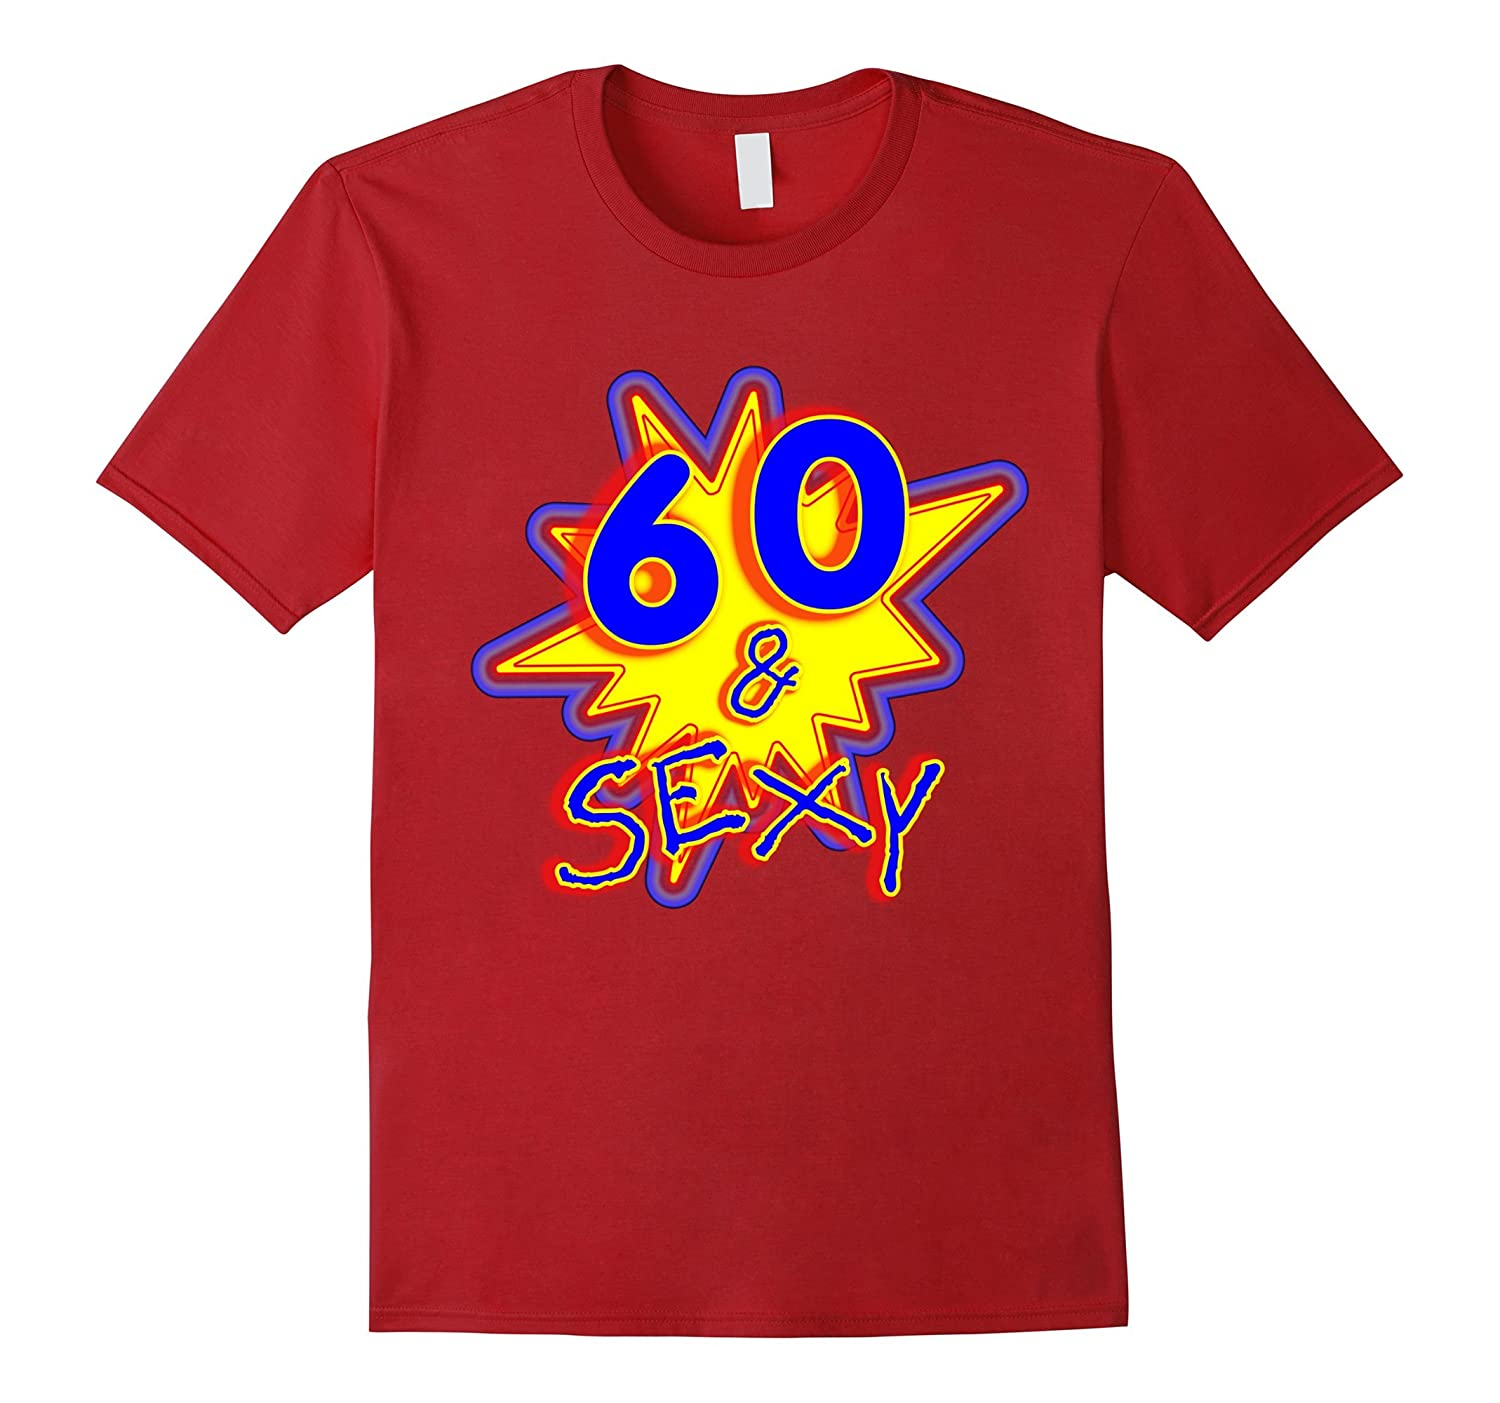 60  Sexy Funny Comic Book Style Novelty T-Shirt-PL